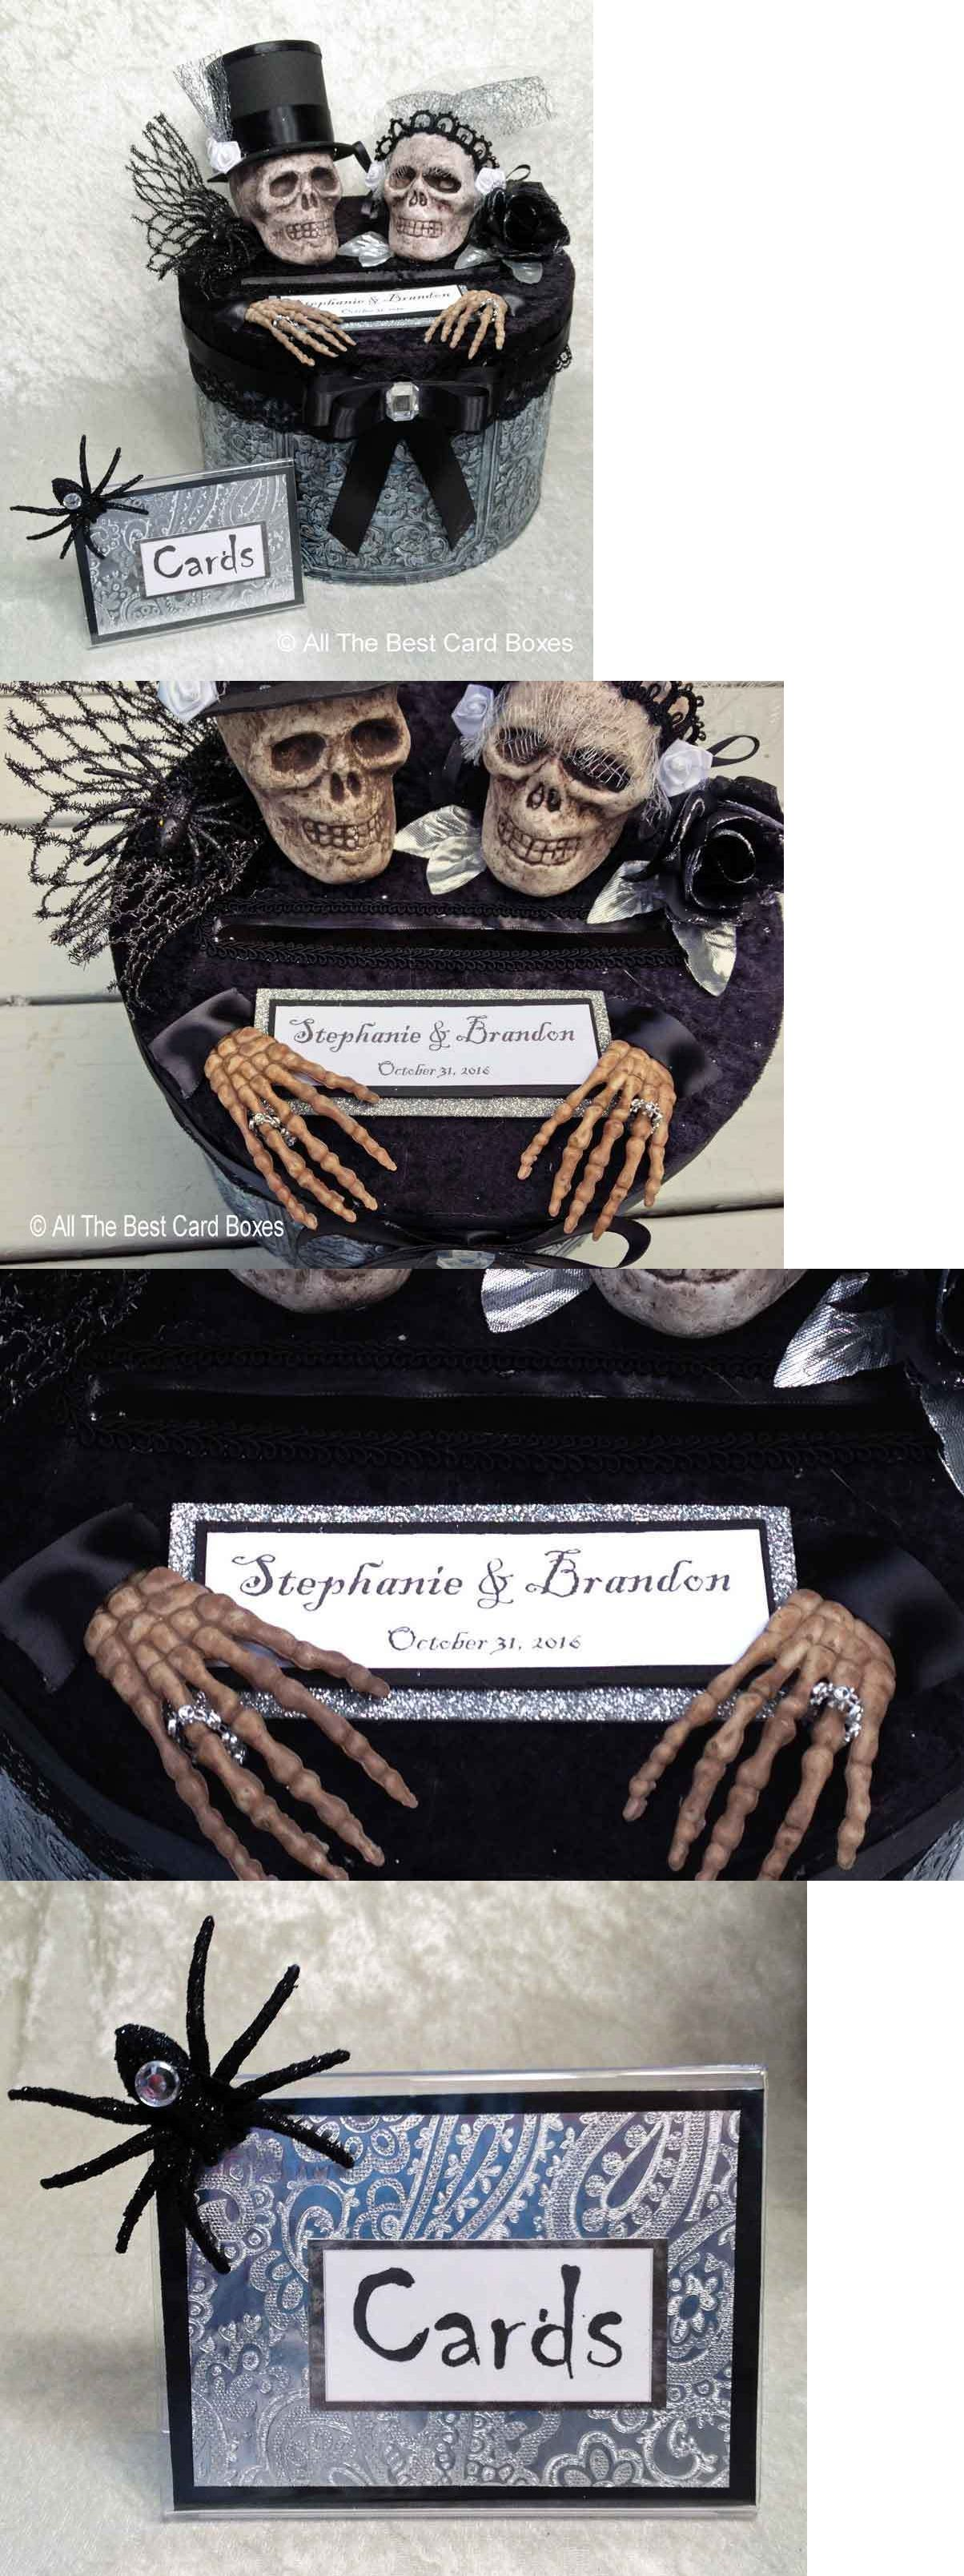 Card Boxes and Wishing Wells 168189 Gothic Skull Wedding Card Box – Ebay Wedding Card Box